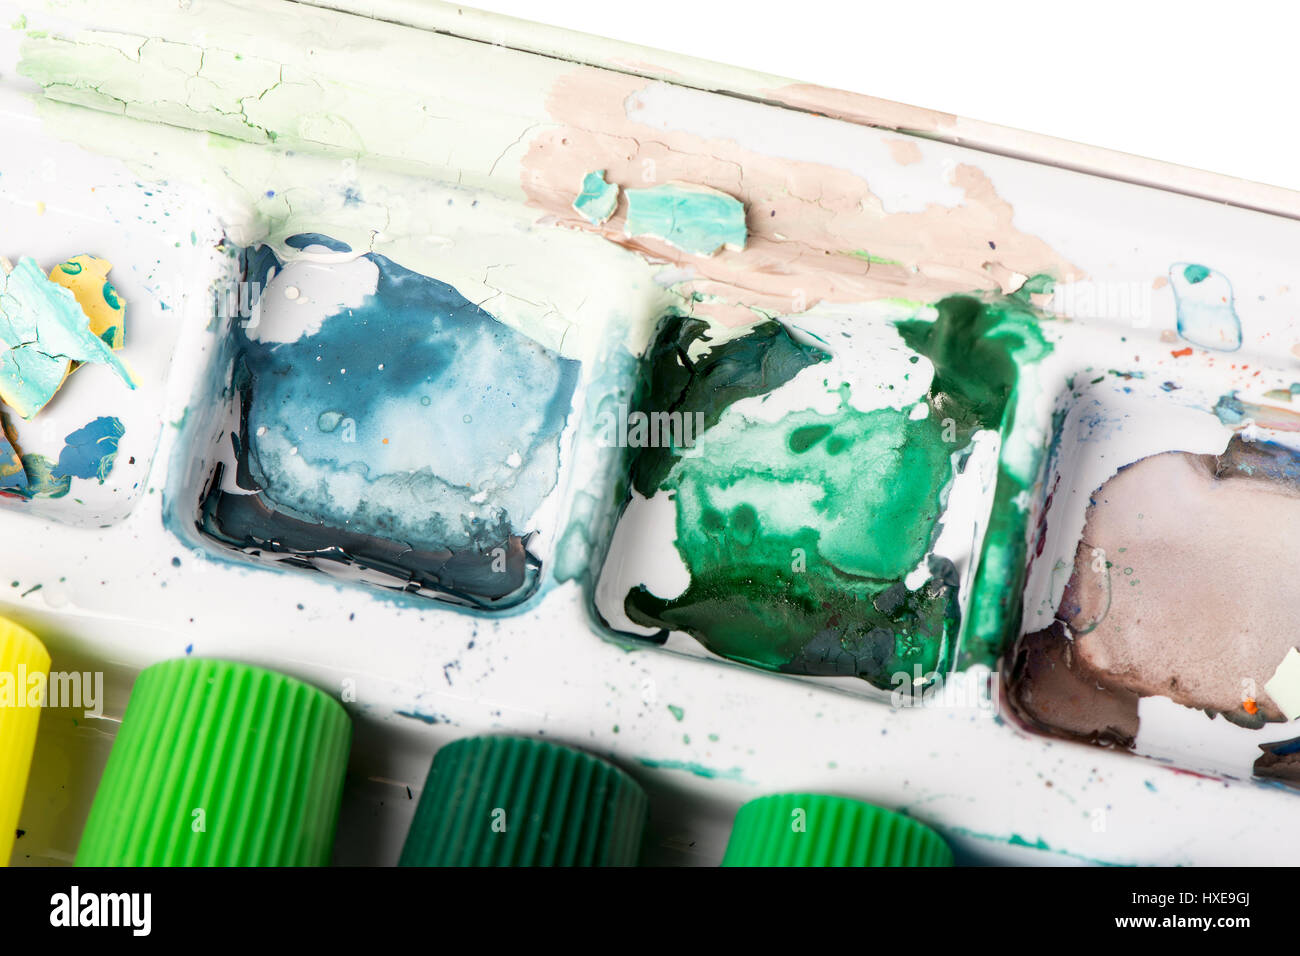 A used oil paint palette with dried paint in cool colors. - Stock Image